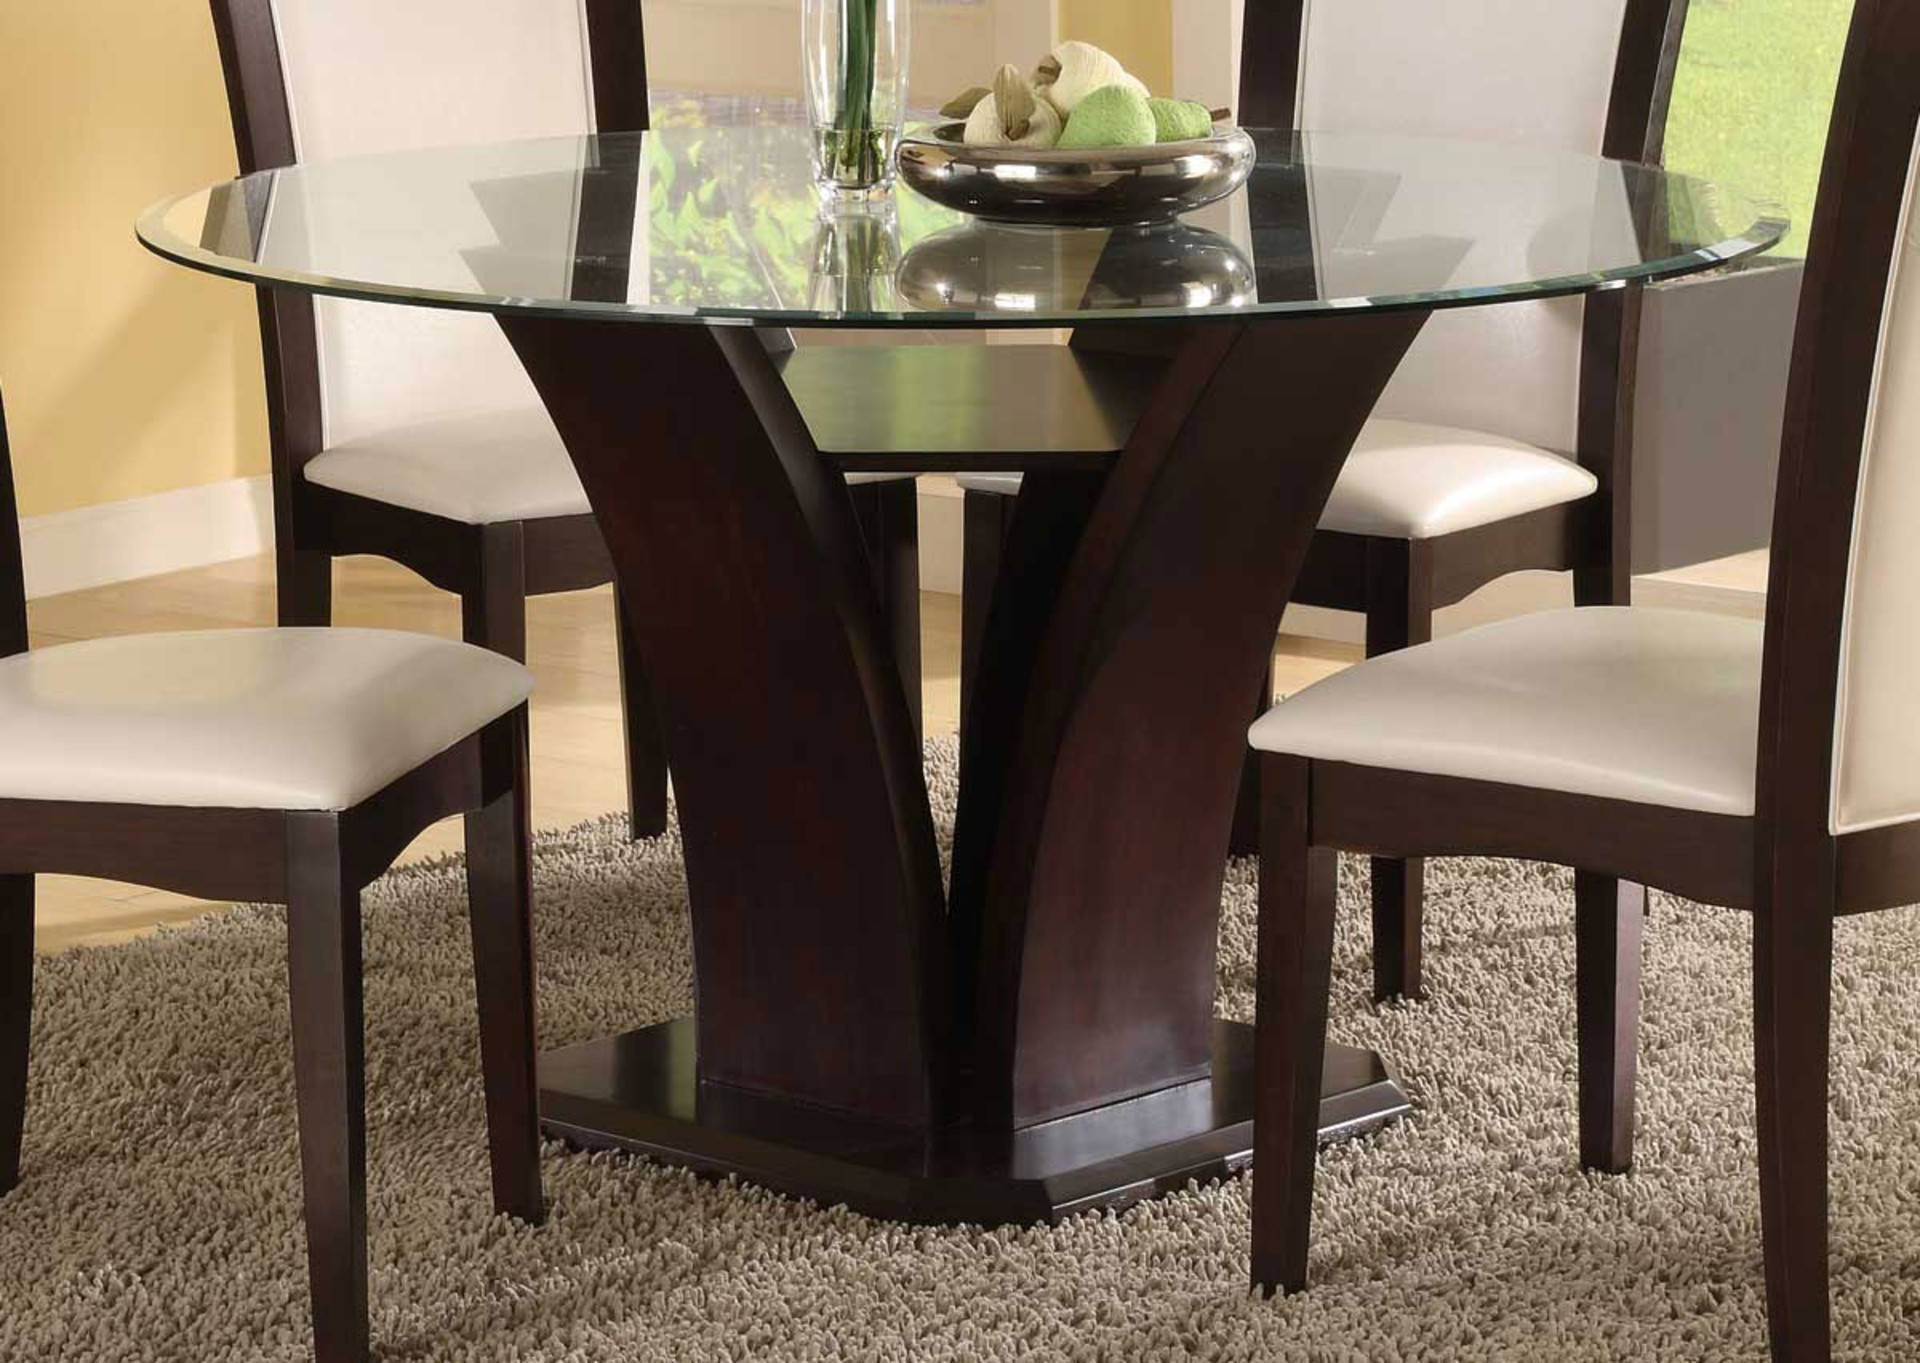 short rectangular glass vase of top 25 luxury glass top dining tables rectangular welovedandelion com pertaining to glass top dining tables rectangular awesome luxury round glass and wood dining table of glass top